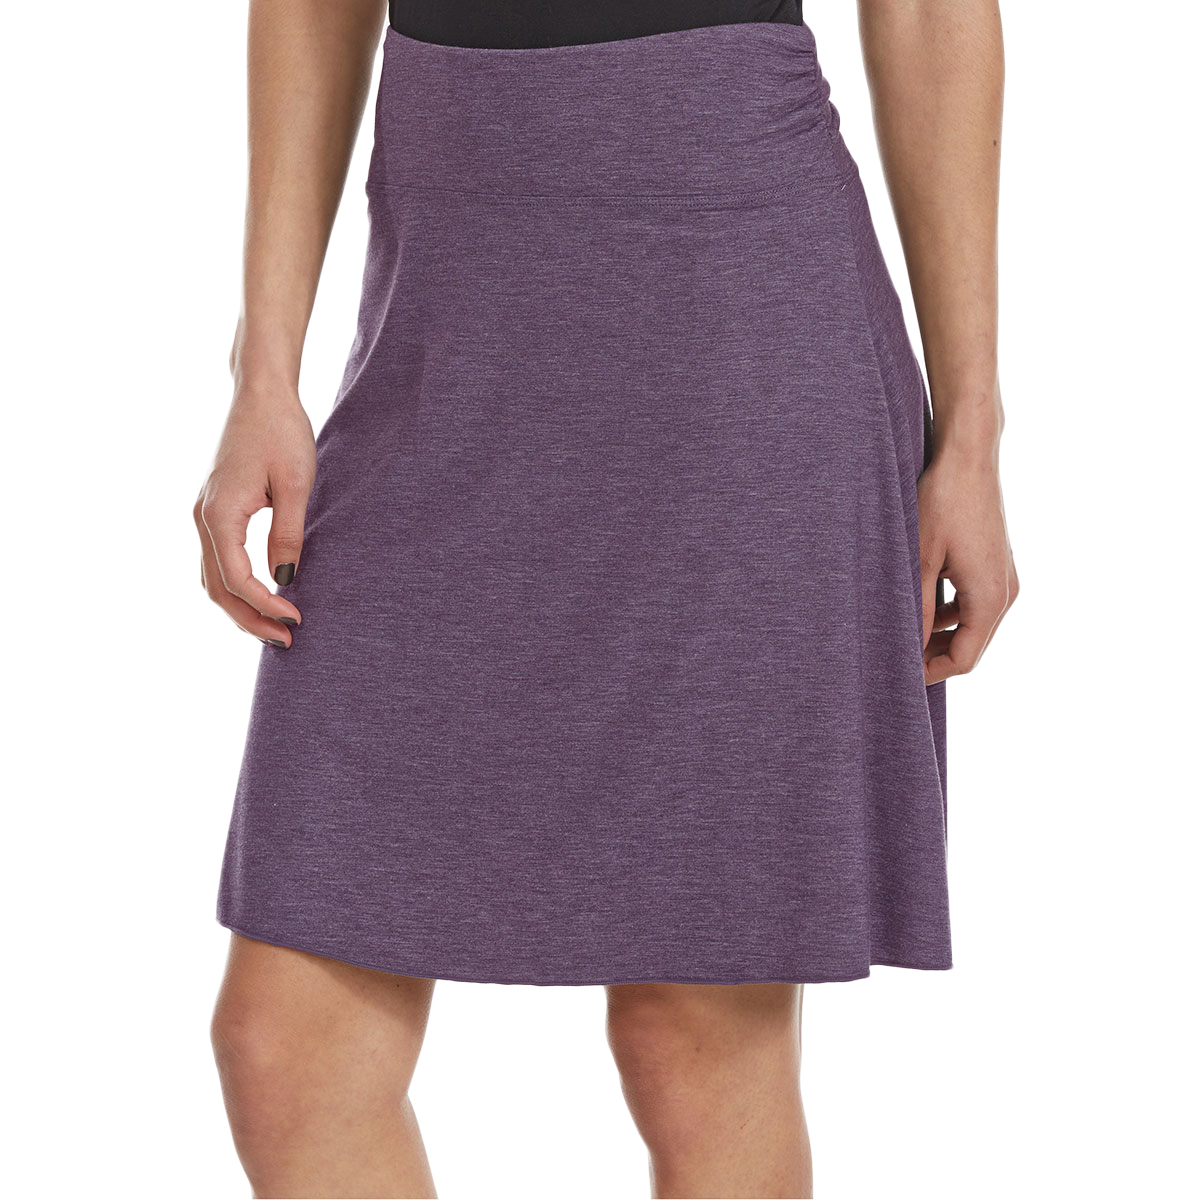 Ems Women's Highland Skirt - Purple, S